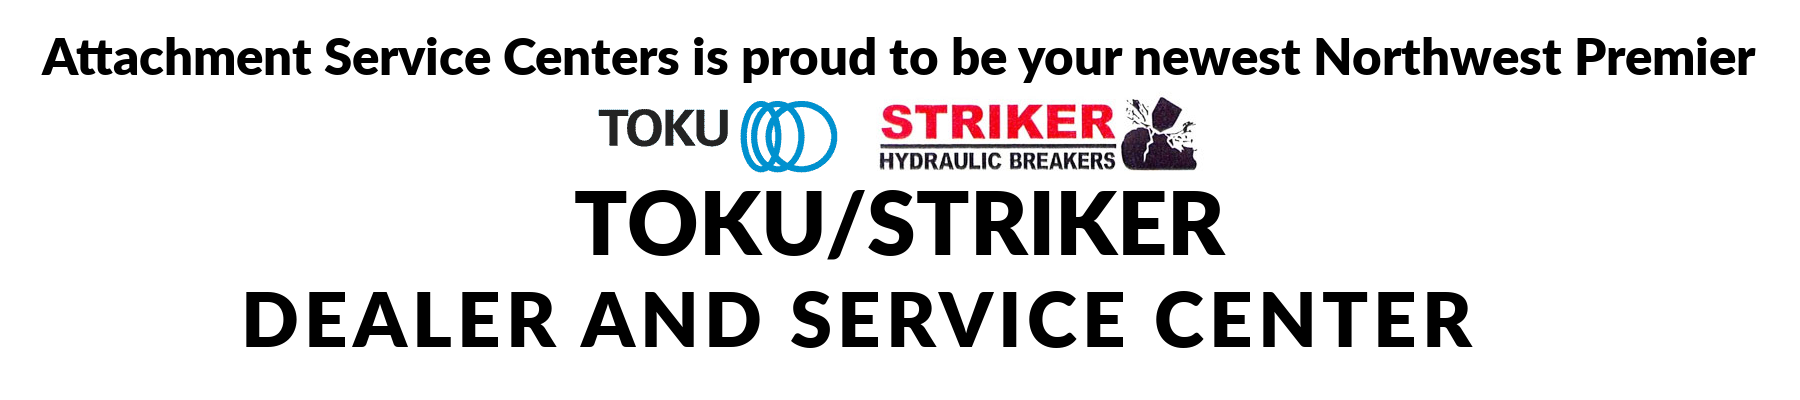 ASC is proud to be a Toku / Striker Dealer and Service Center